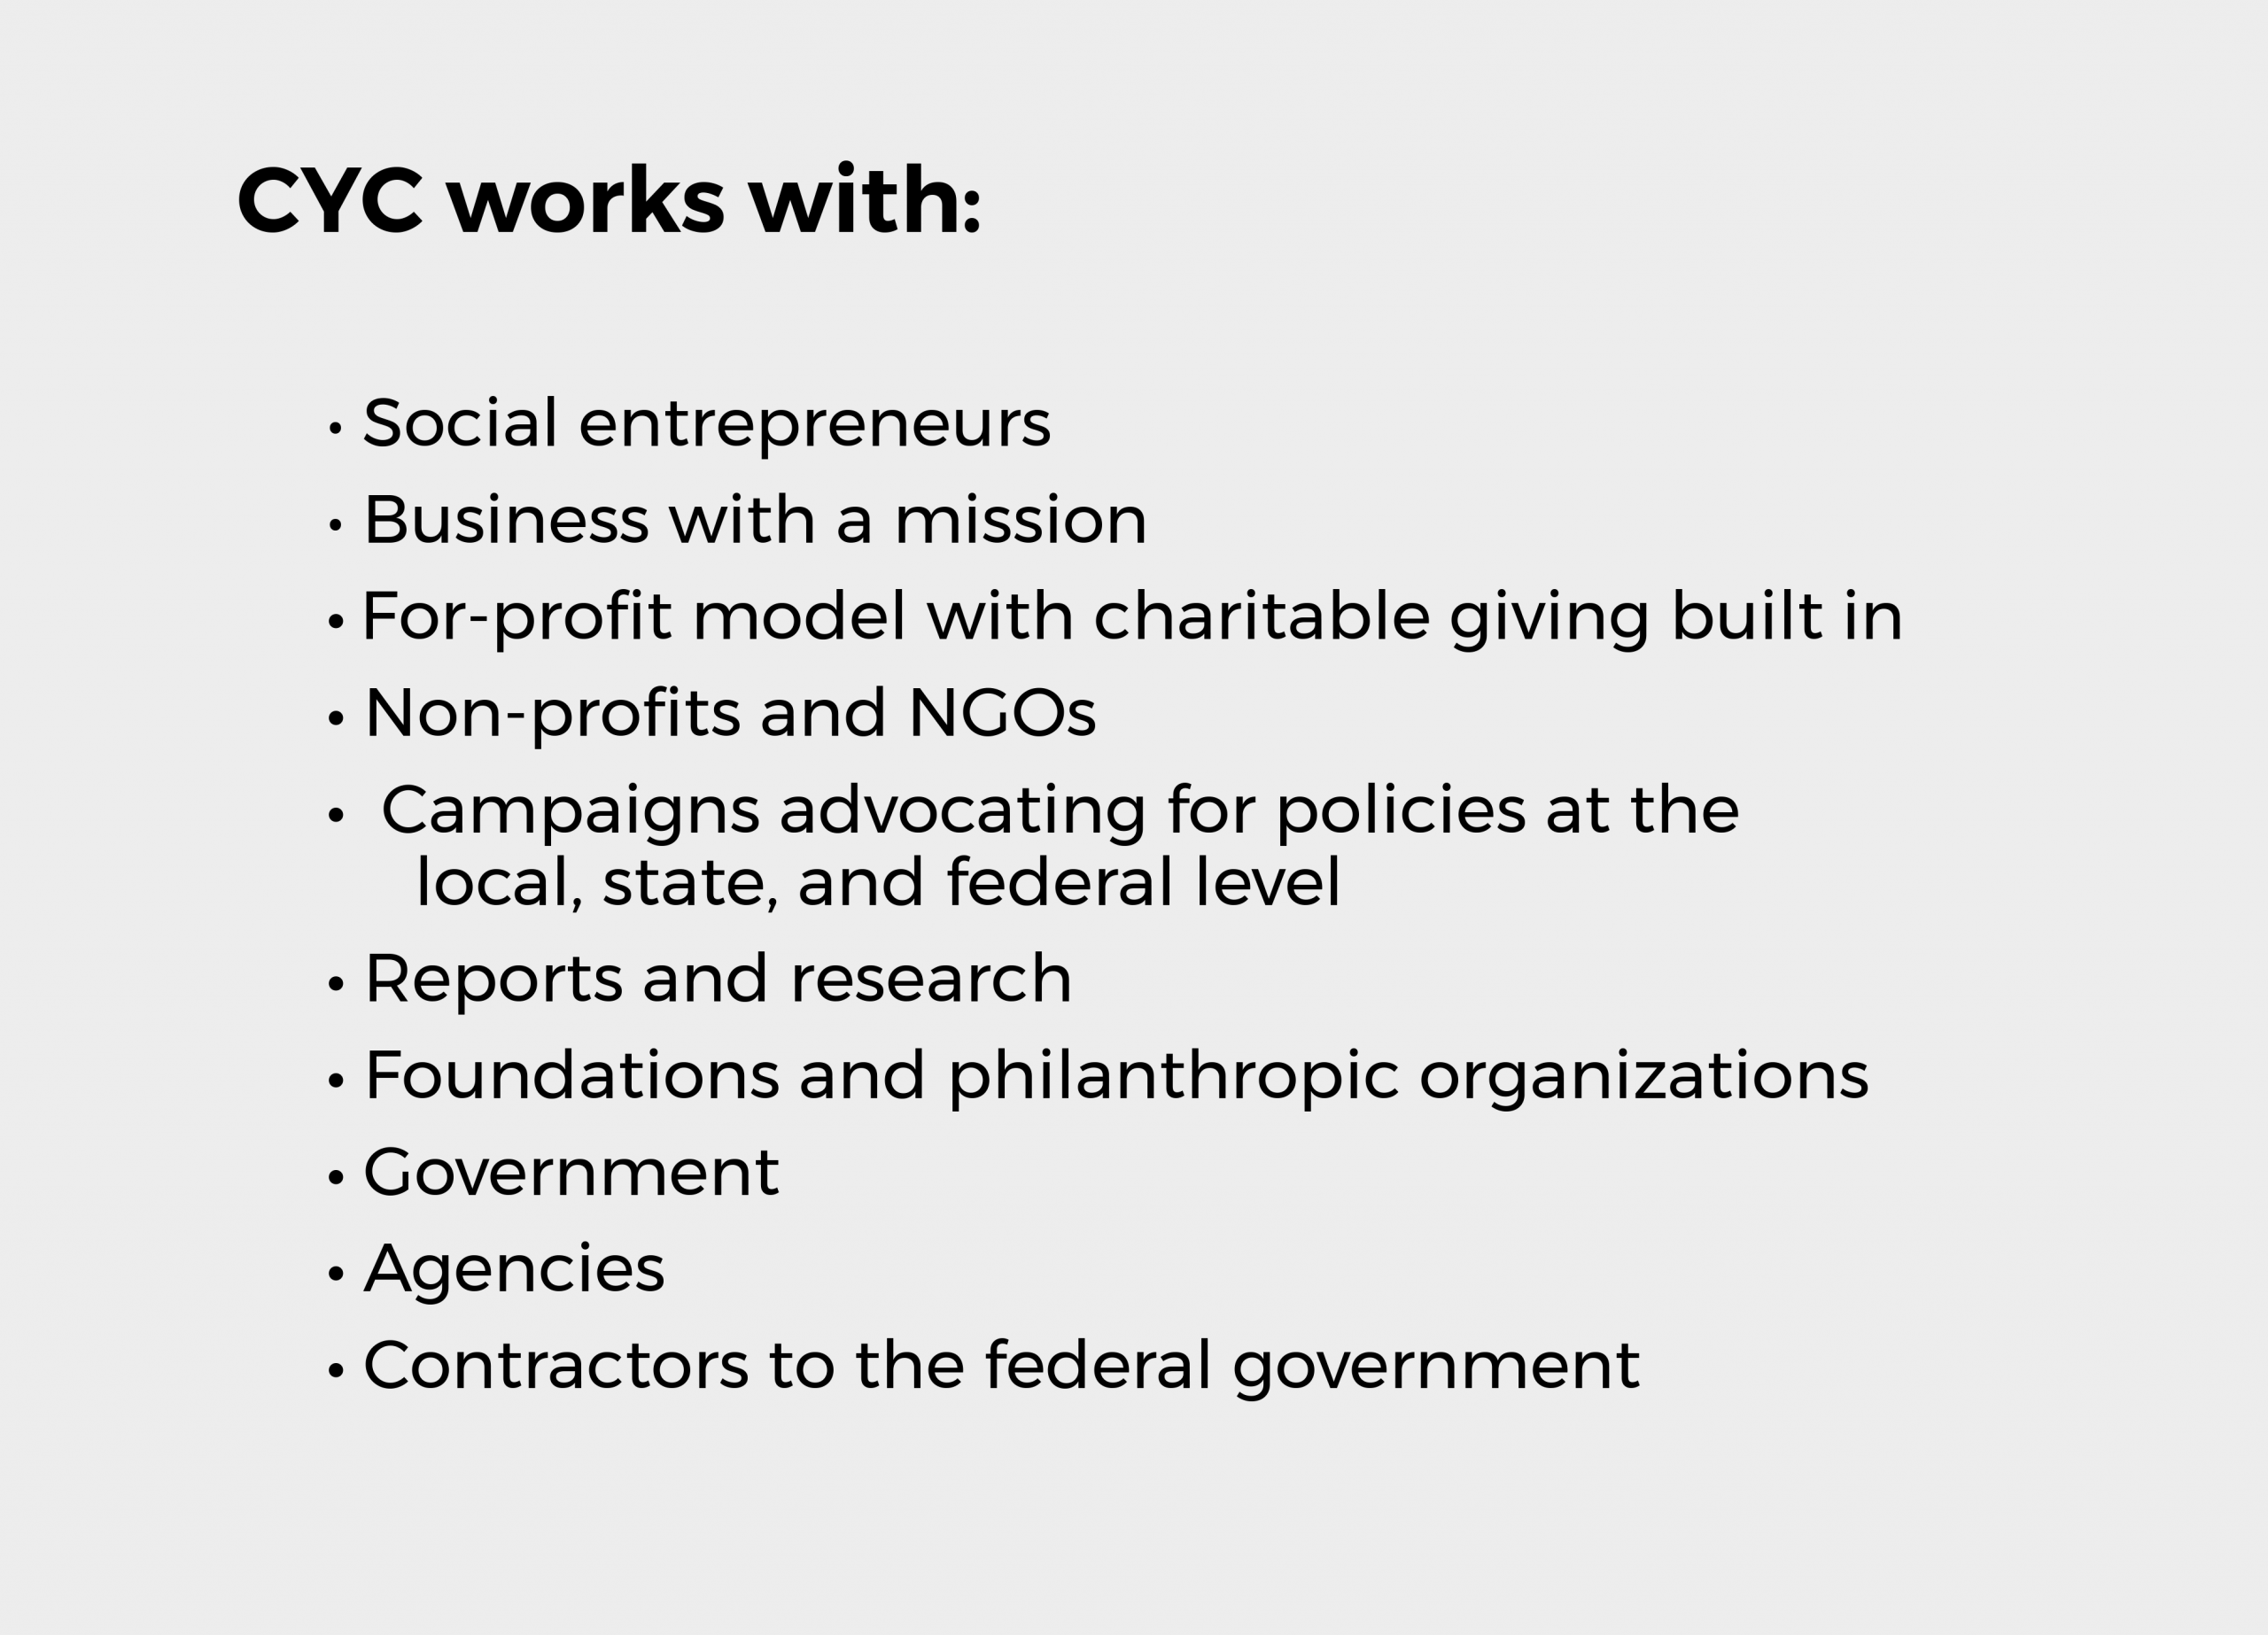 CYC works with outline